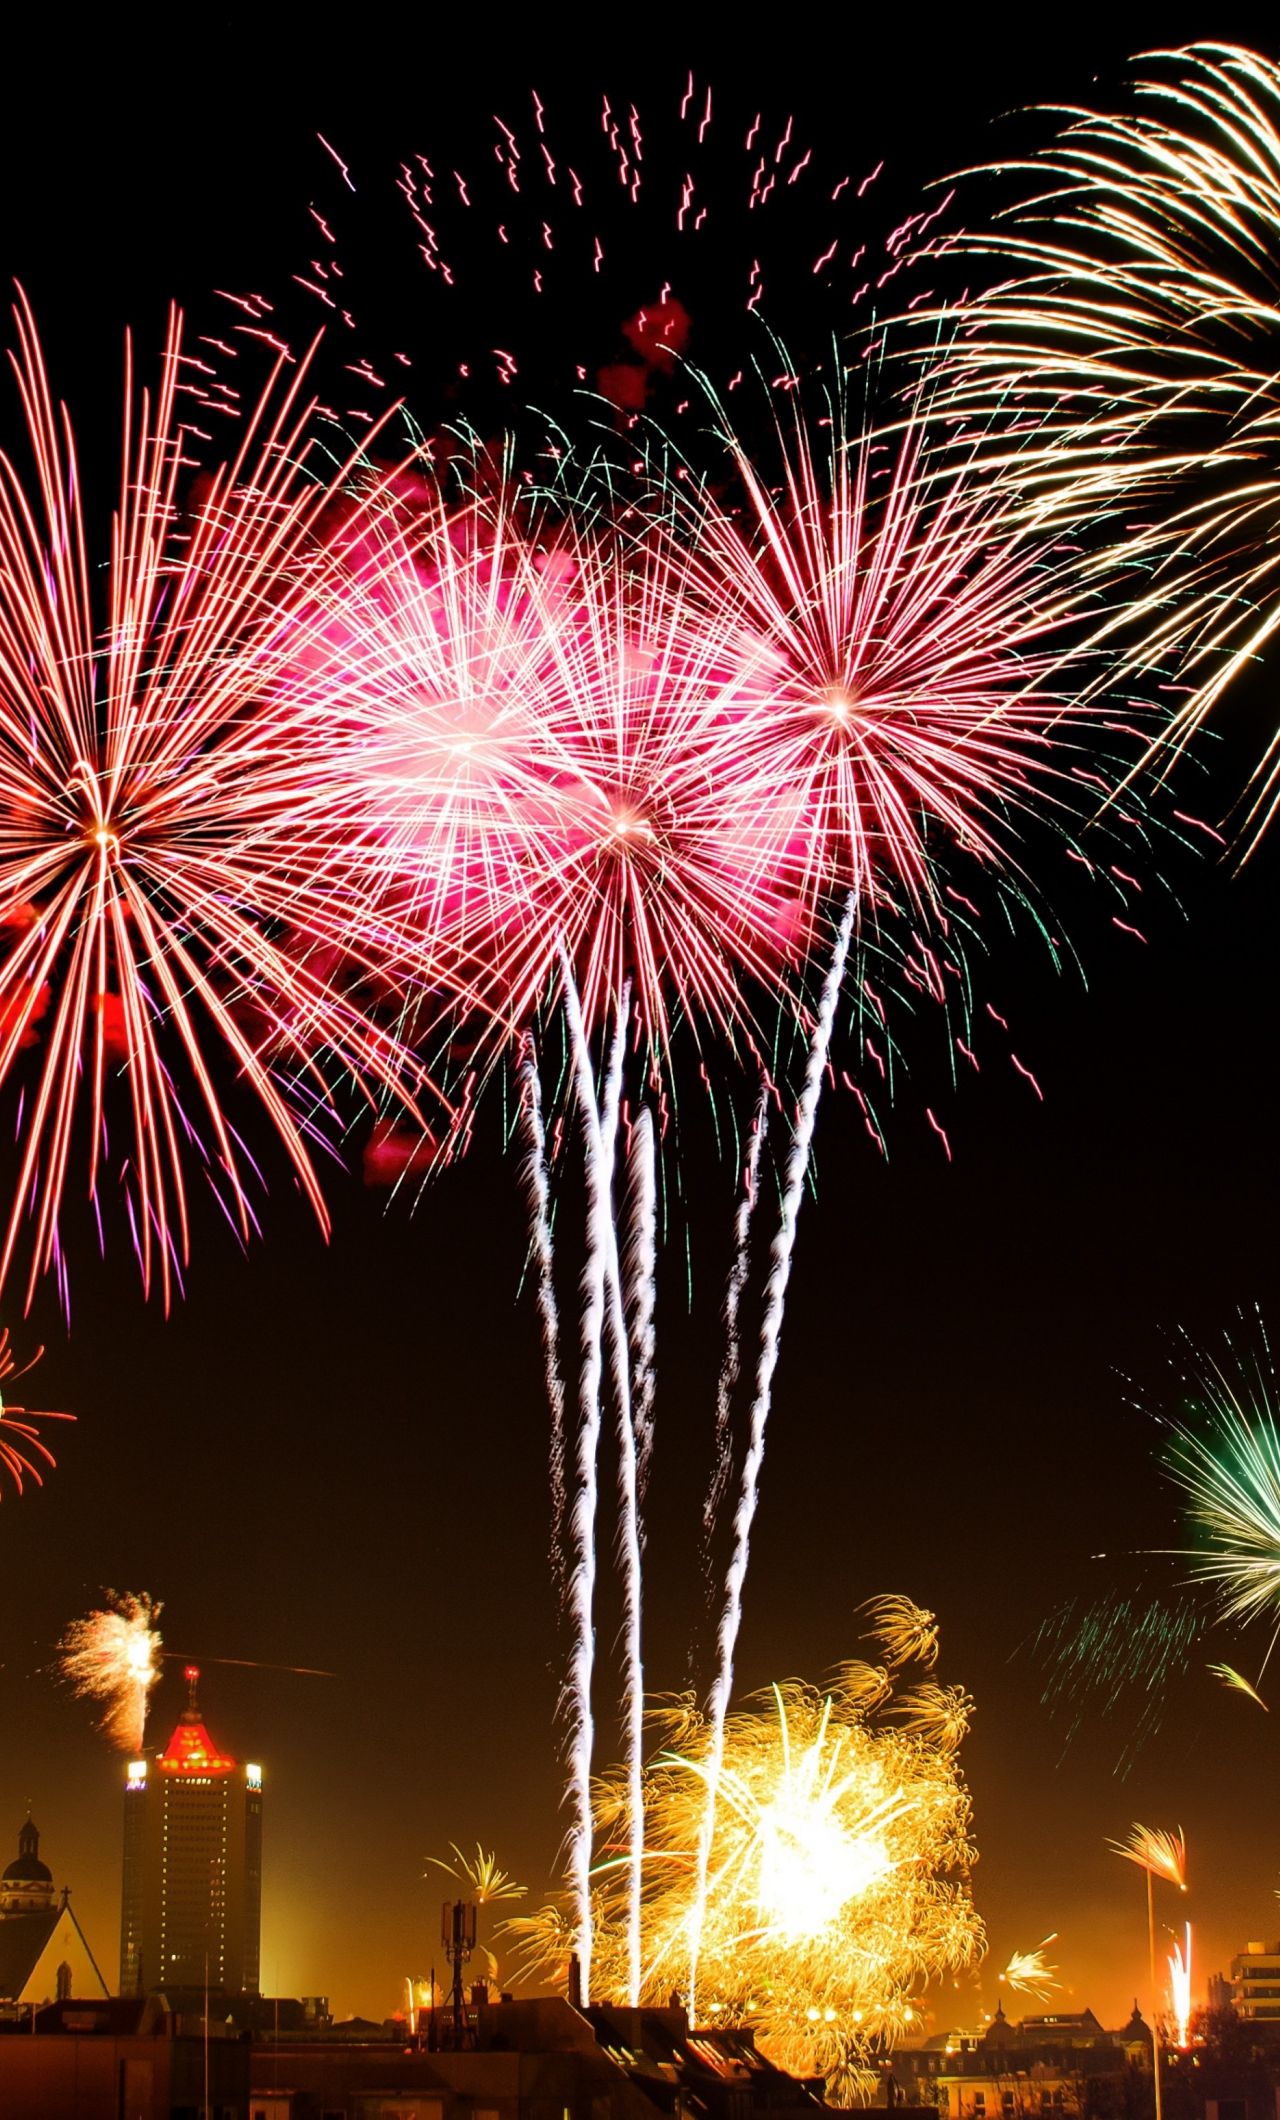 Download 1280x2120 Wallpaper New Years Eve 2018 Fireworks Night